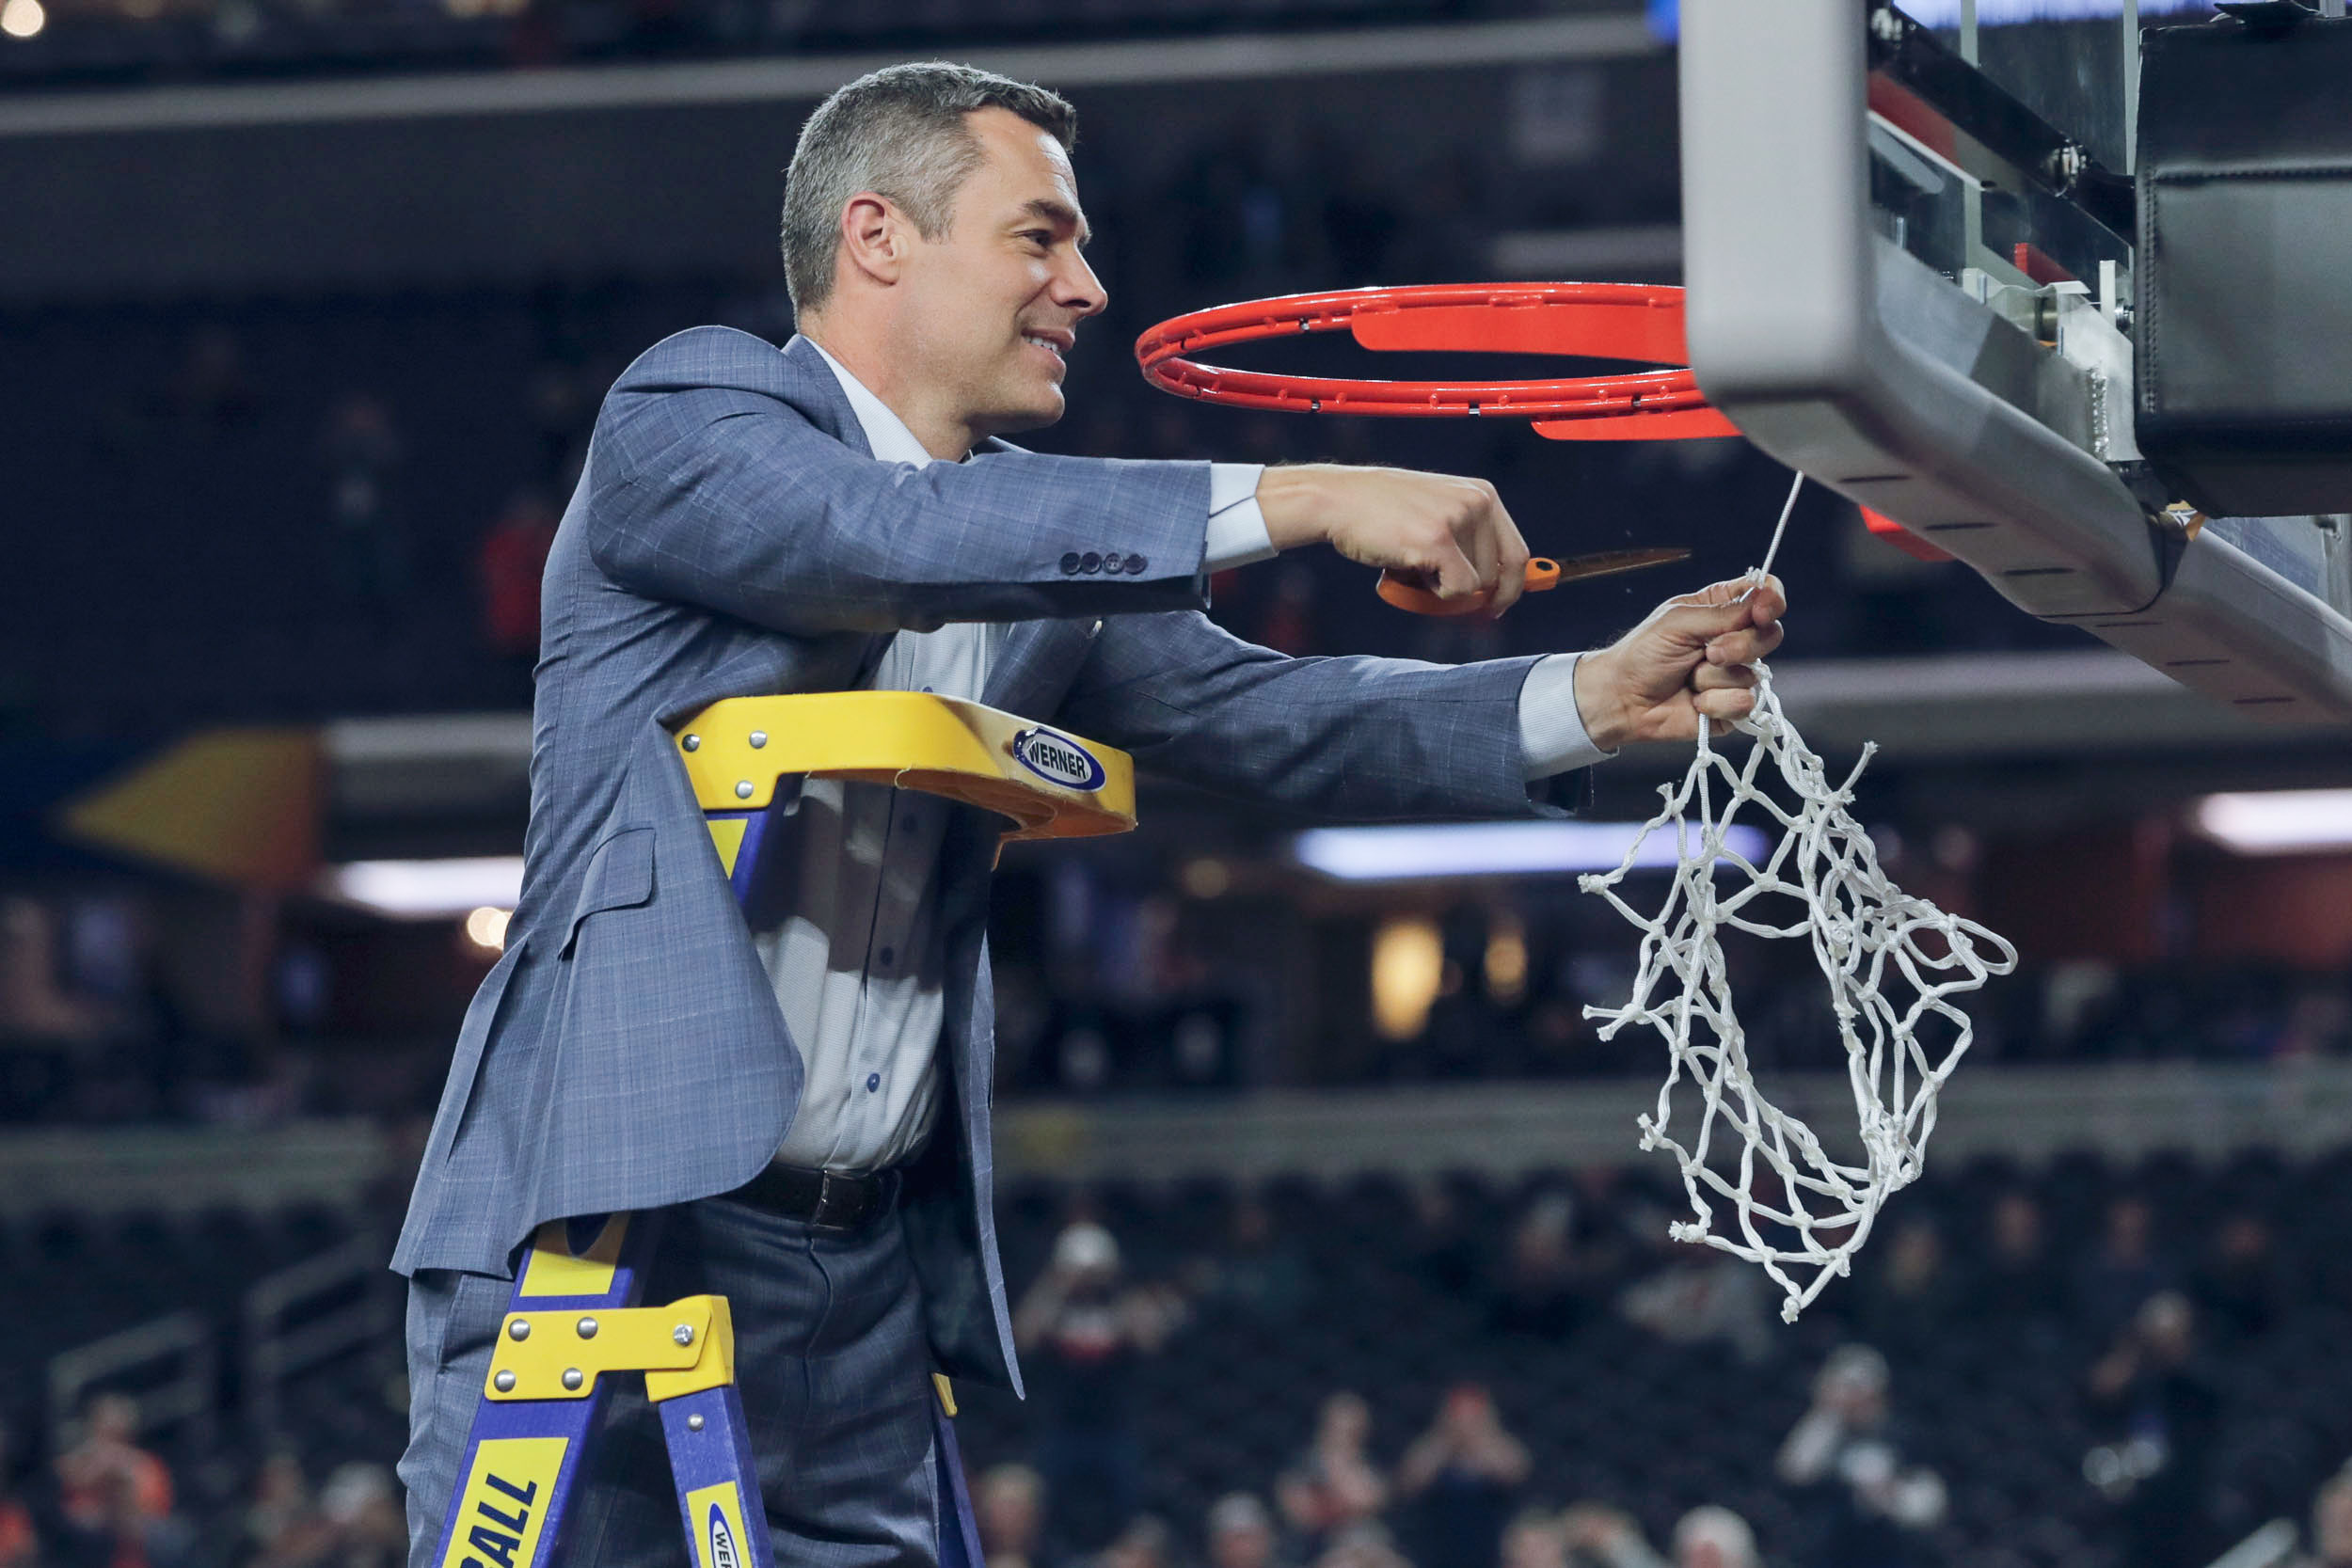 UVA men's basketball coach Tony Bennett cuts down the net after the Cavaliers won the NCAA championship on April 8.